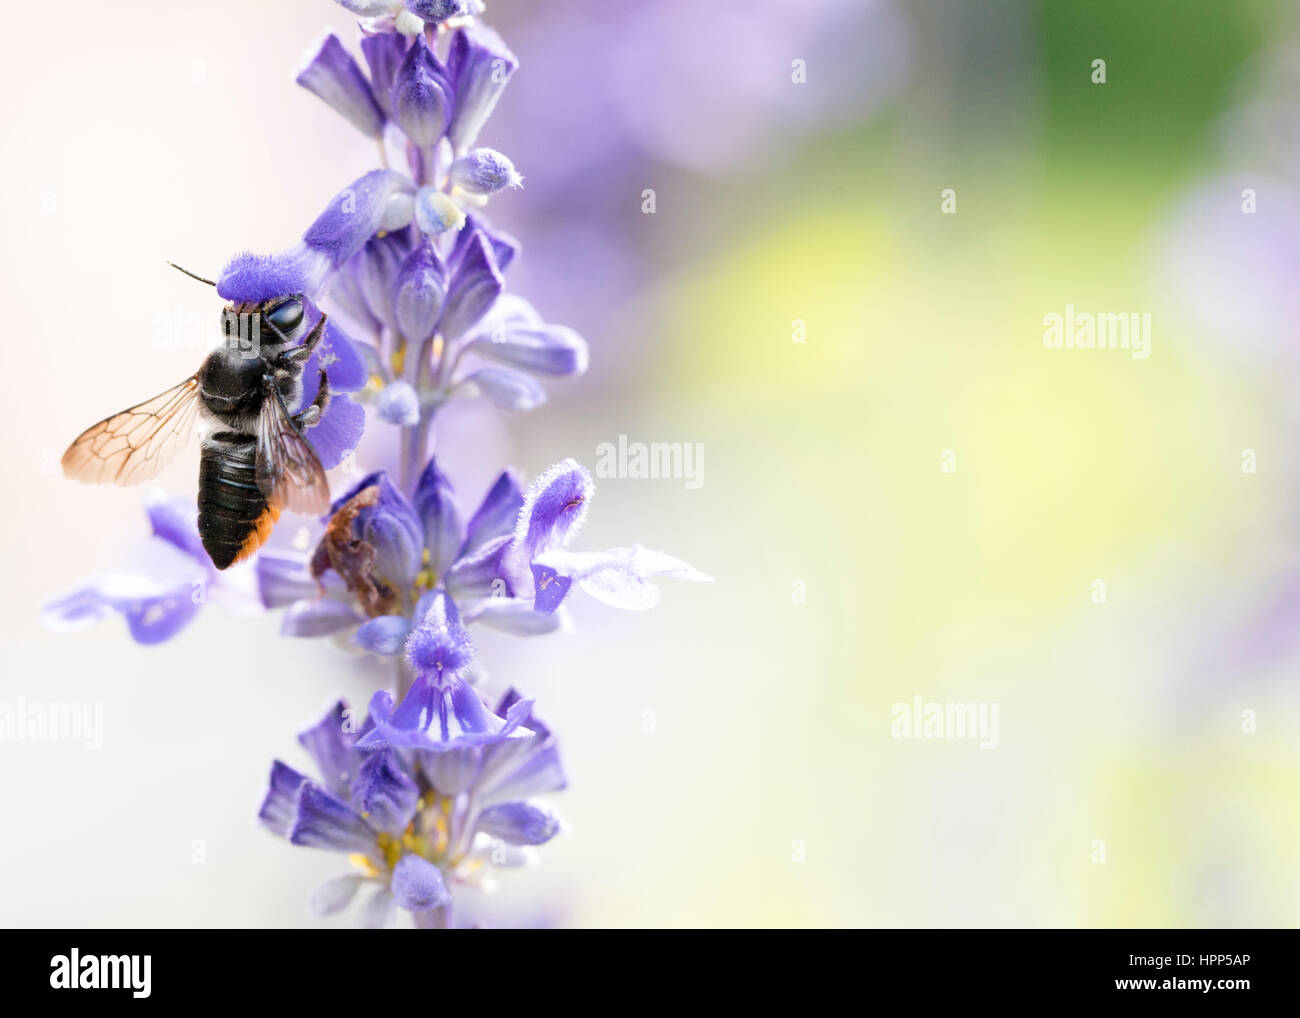 Feuille d'Australiens indigènes Cutter Bee - pollinisateur Photo Stock